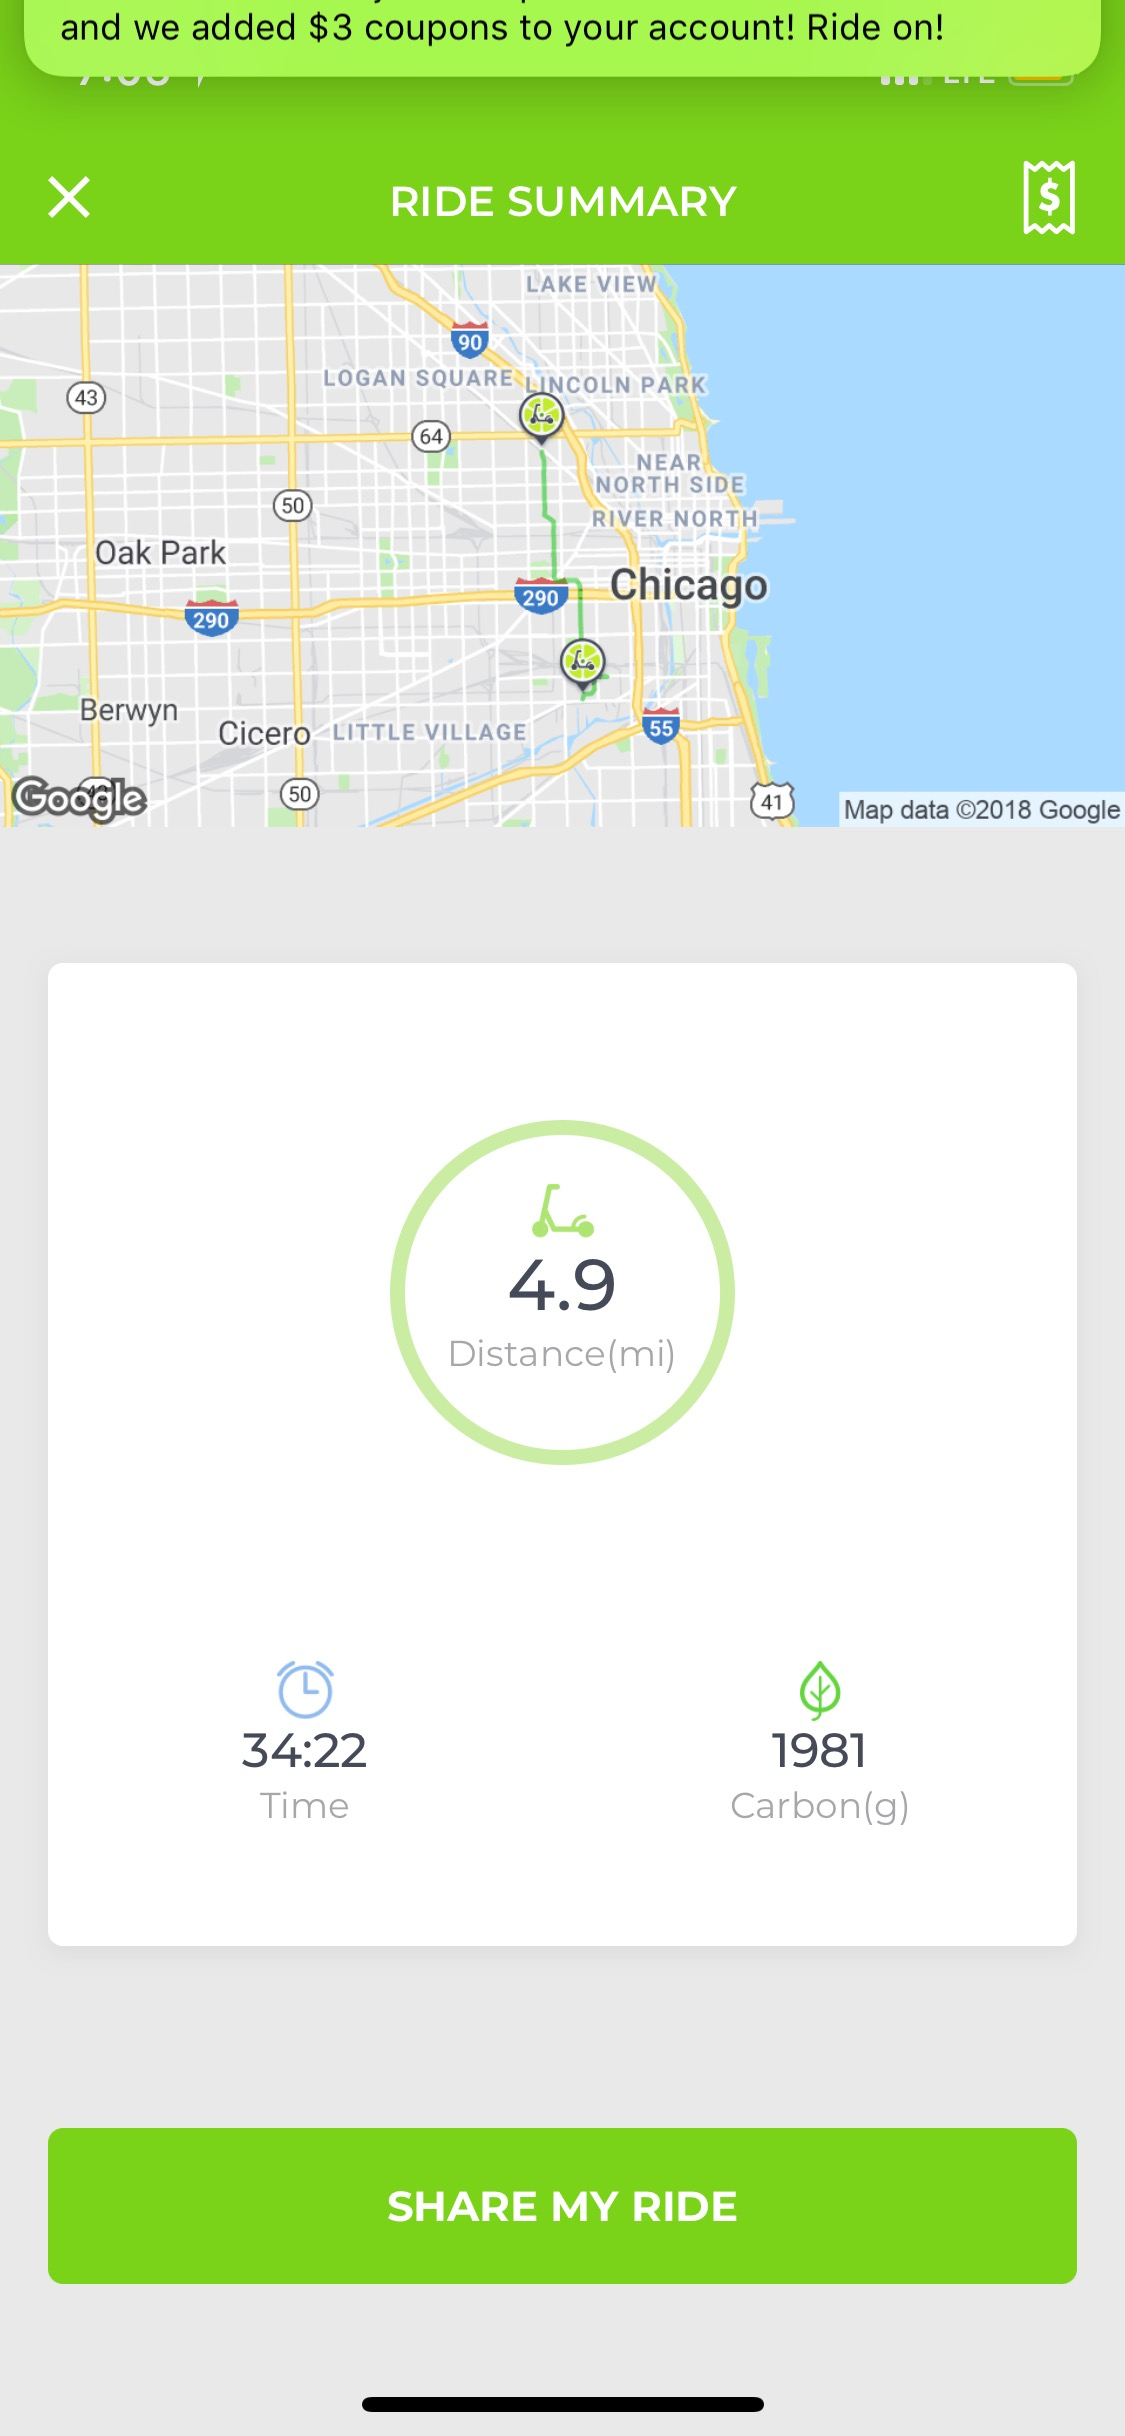 My Lime-S route from Fiesta Del Sol in Pilsen to Wicker Park Fest. The ride cost $8.25 for almost five miles.